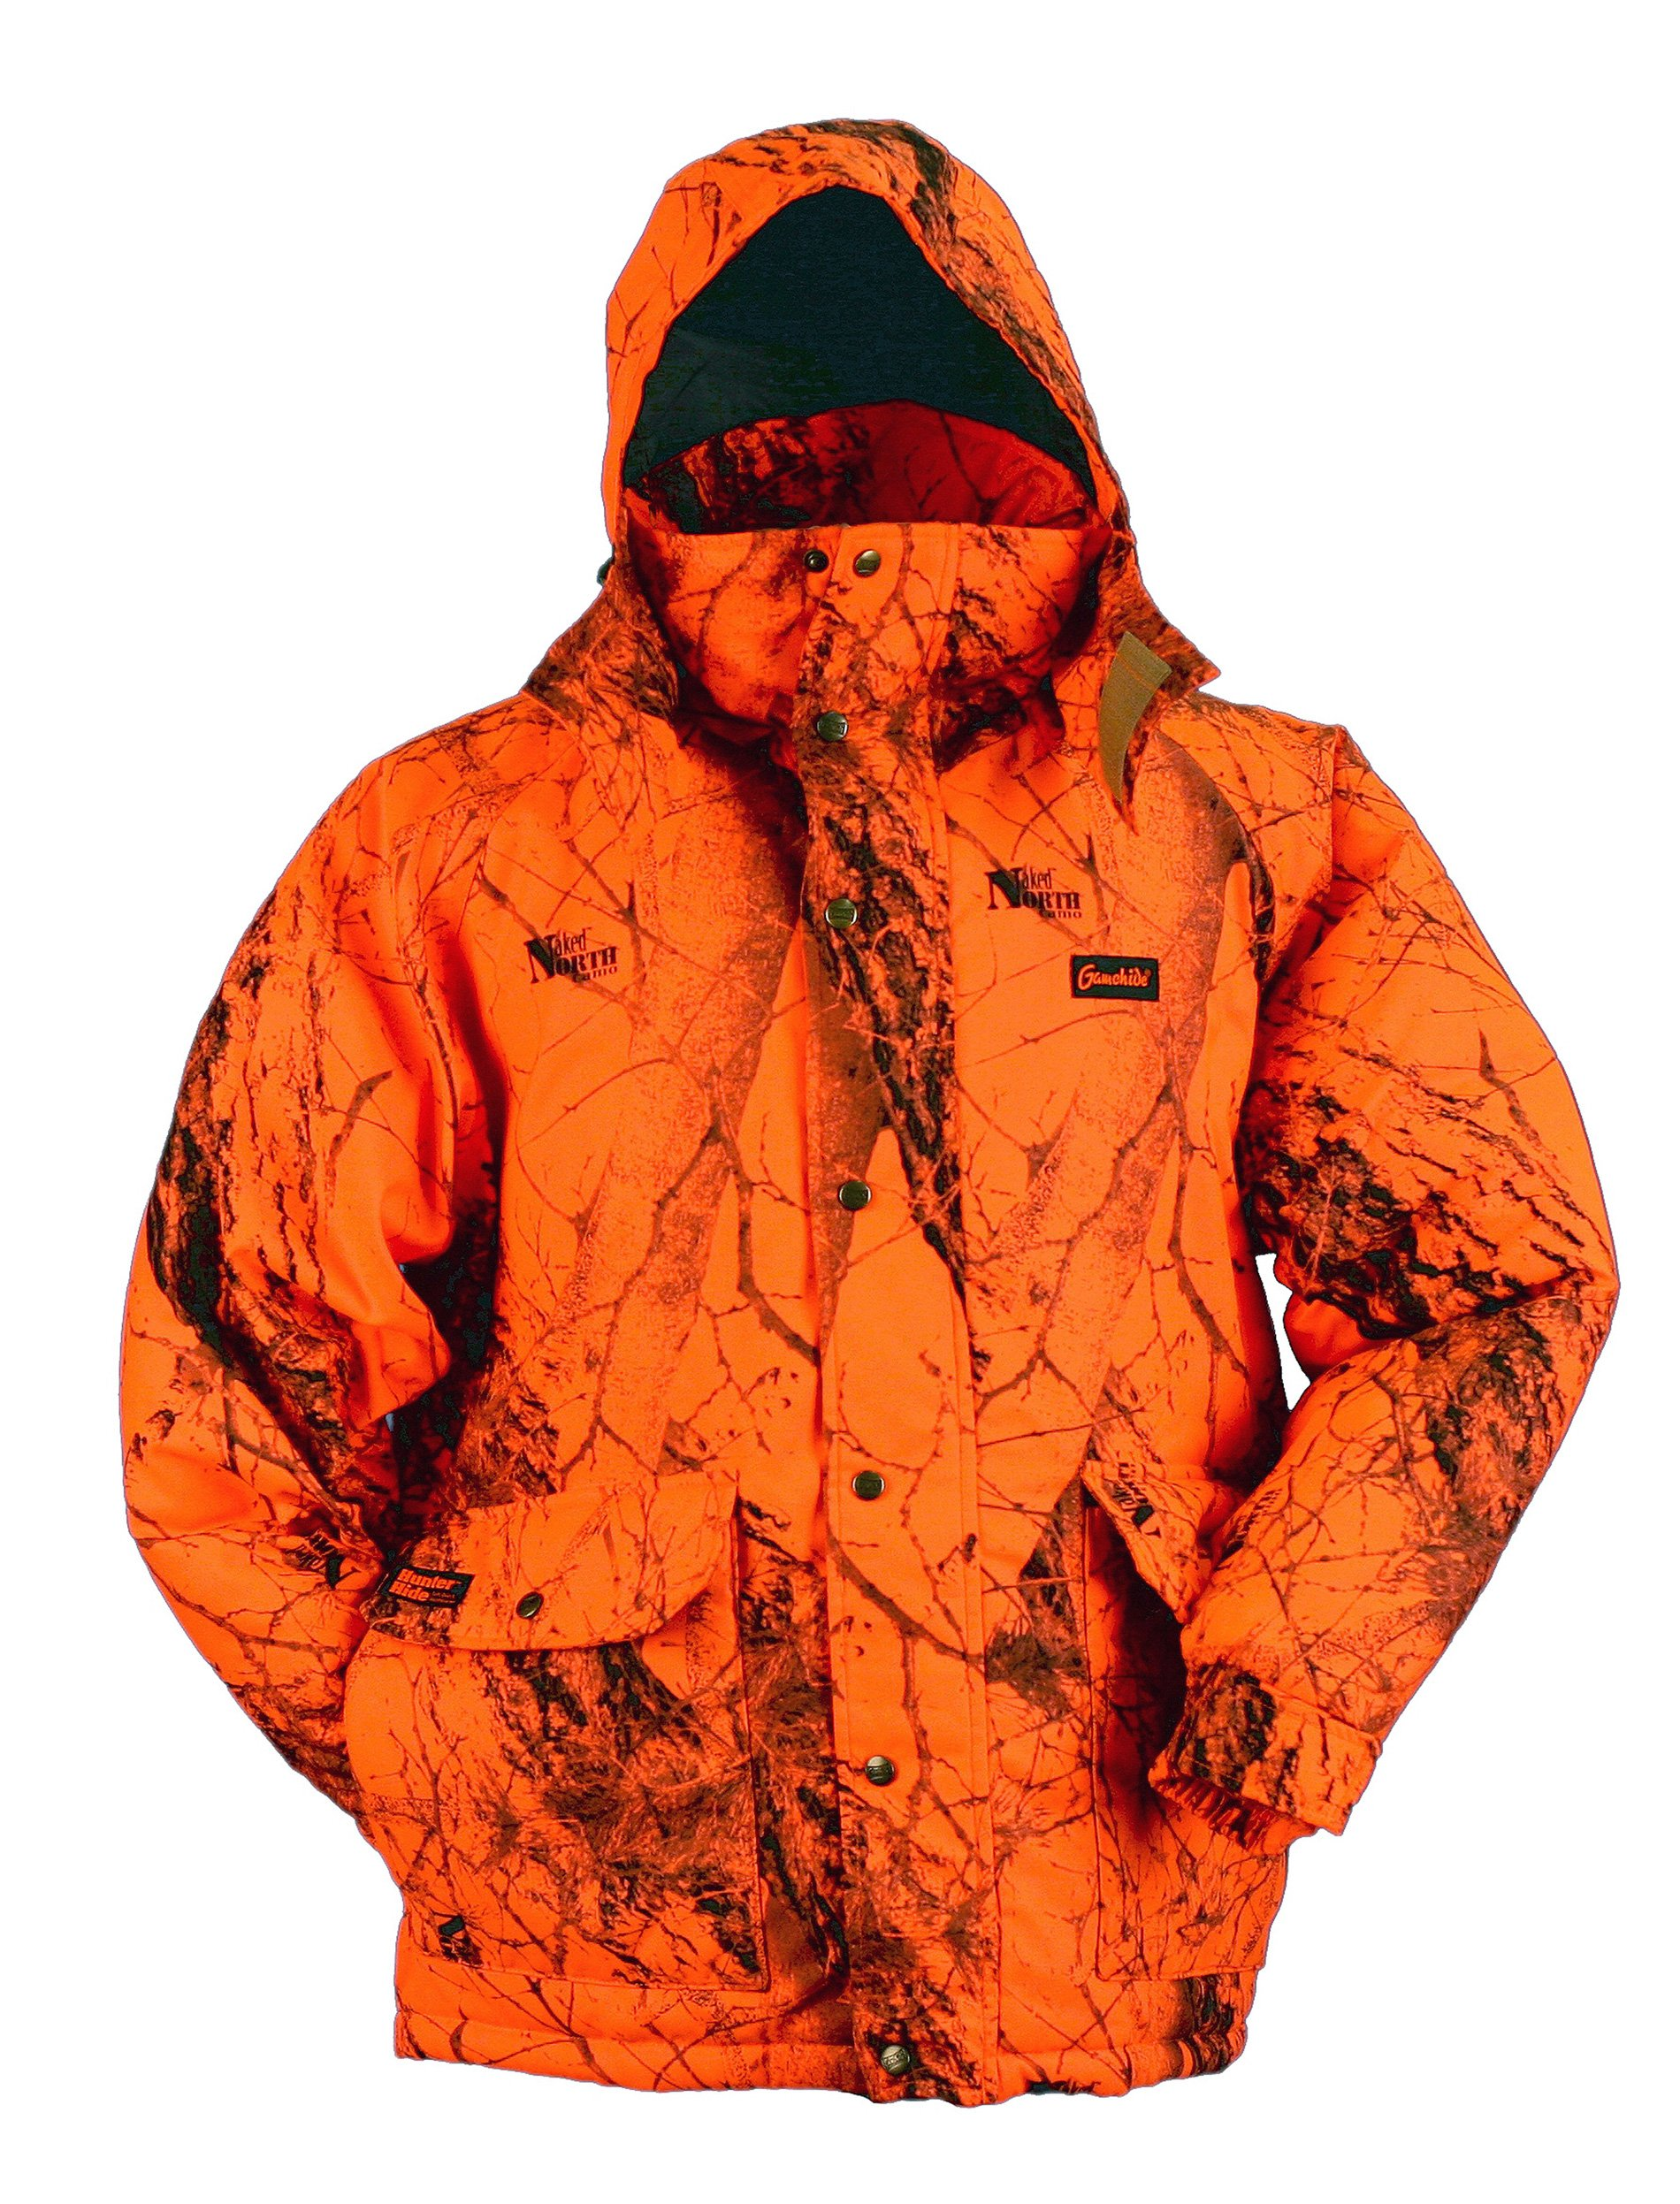 Gamehide Deerhunter Blaze Orange Camo Parka (Naked North Blaze Orange Camo, Large) by Gamehide